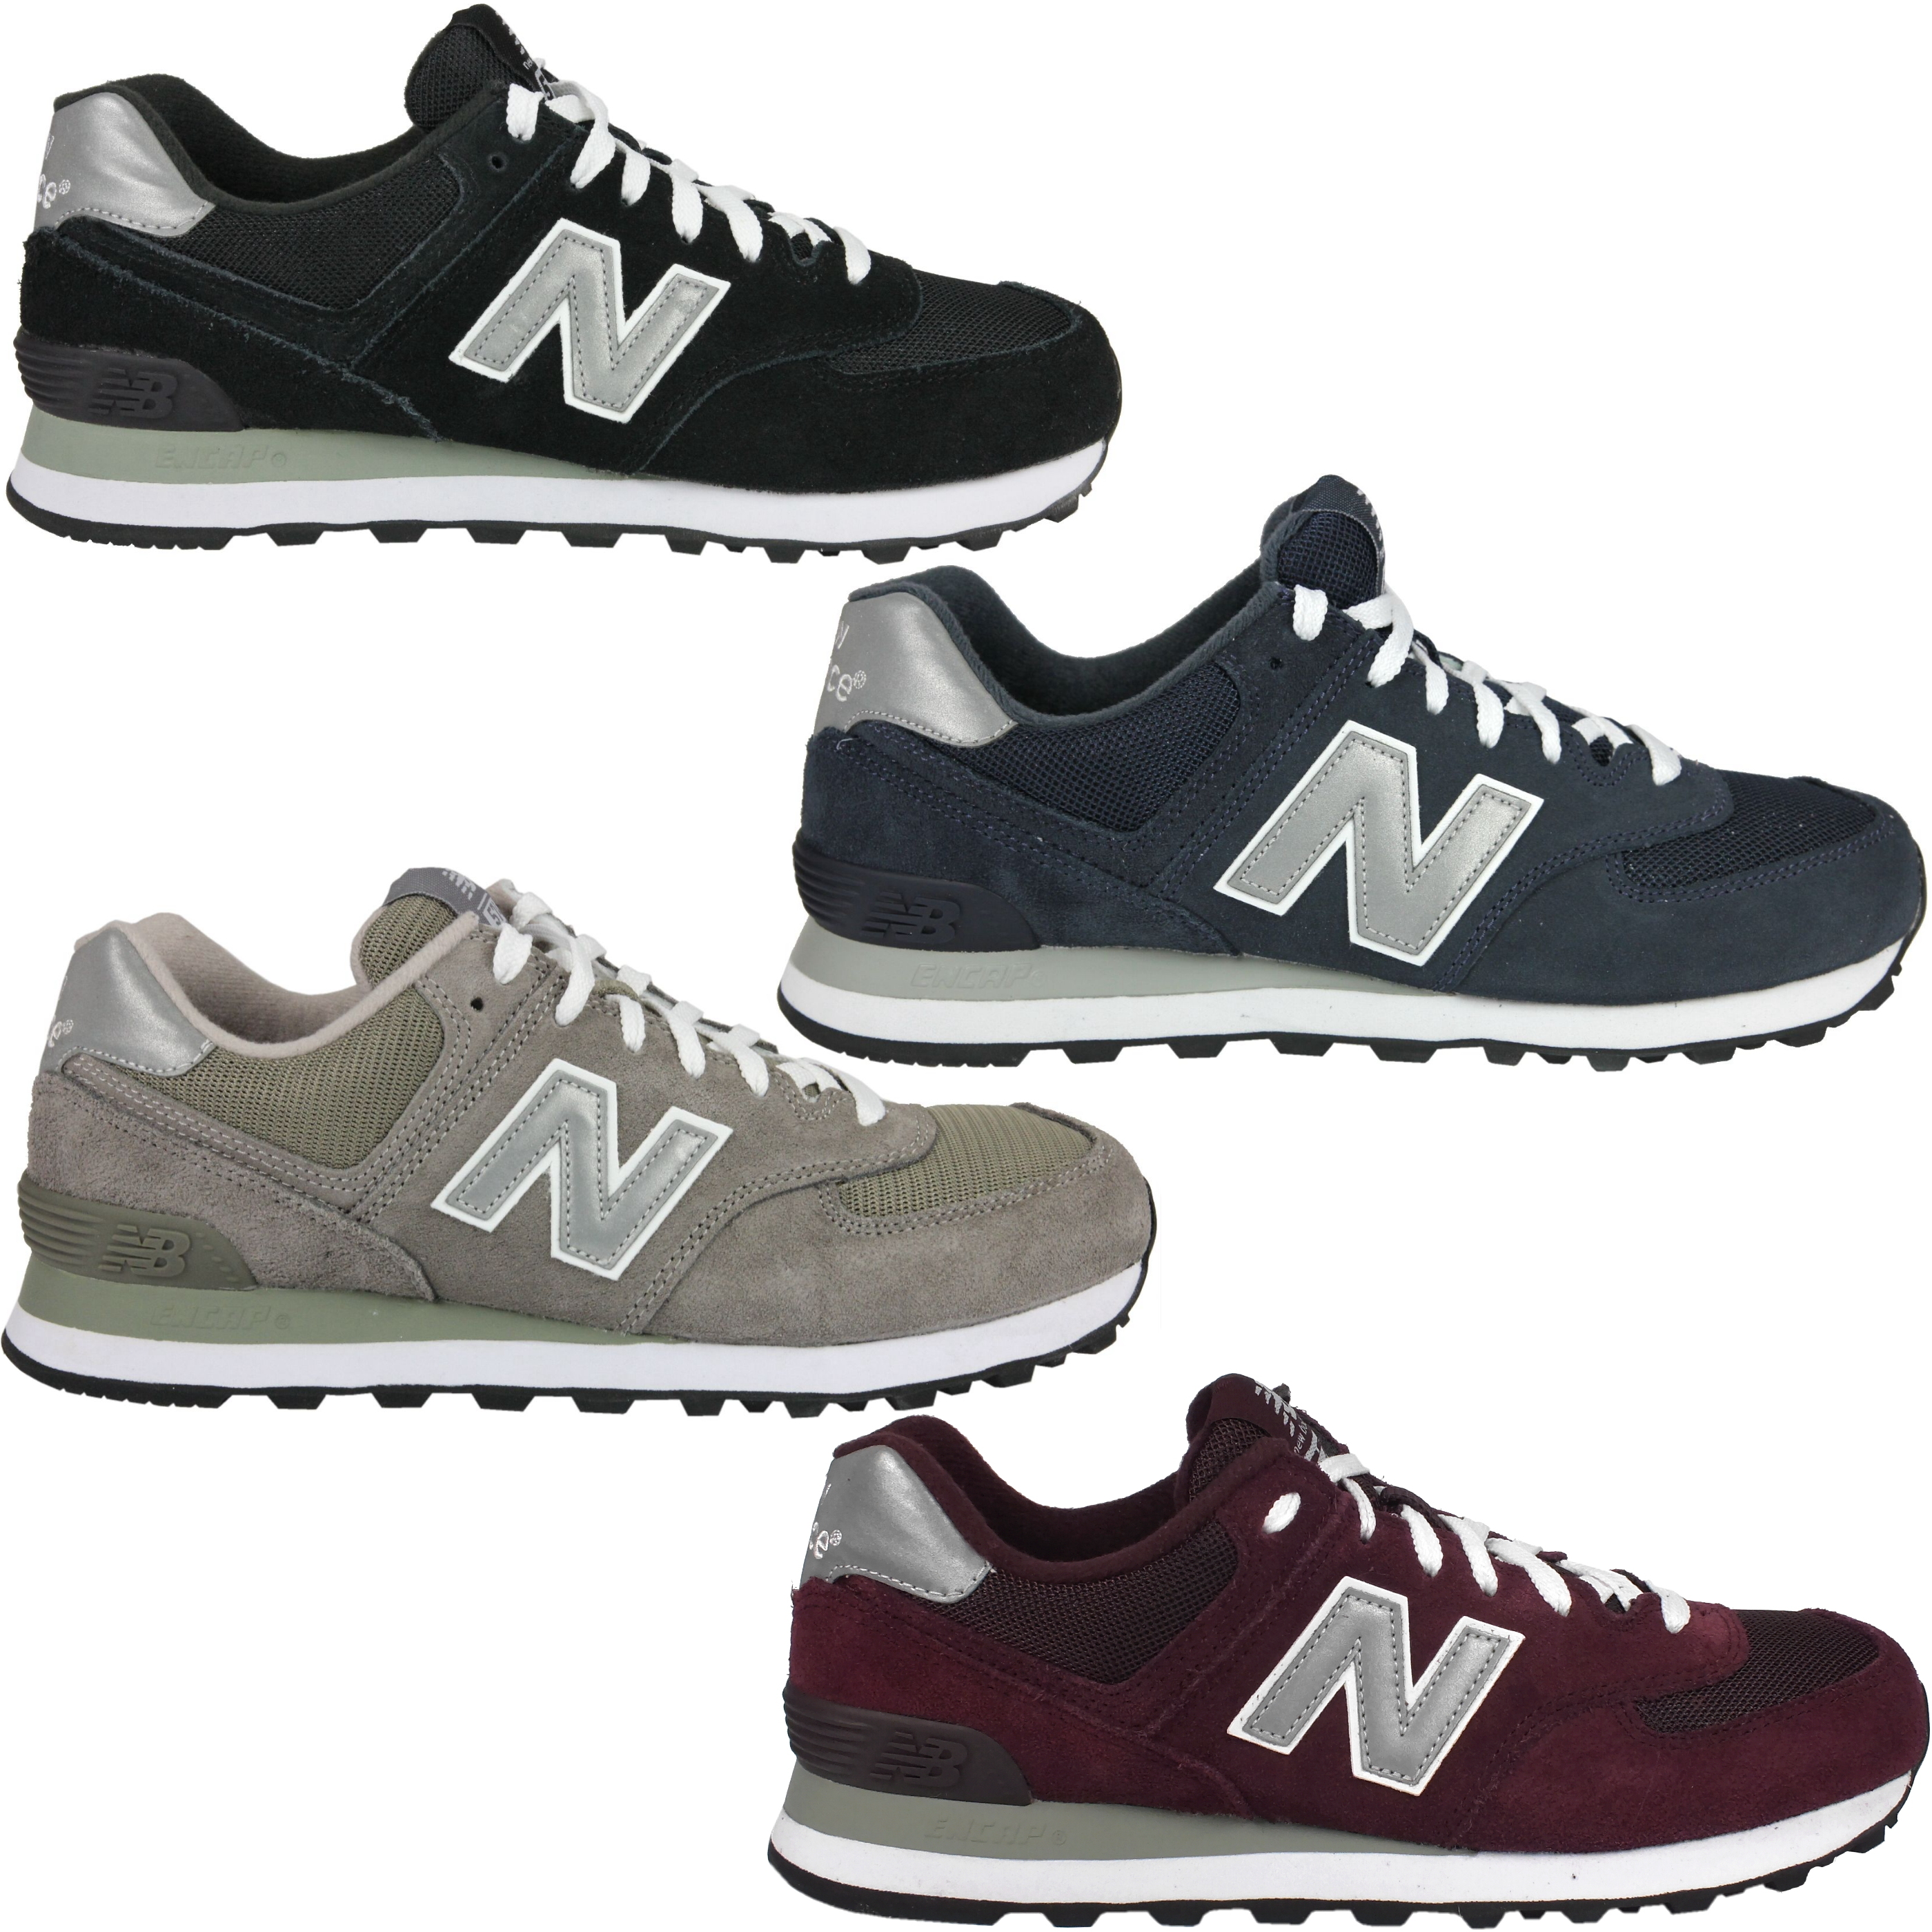 m574 new balance suede men women trainers sneakers black blue gray ebay. Black Bedroom Furniture Sets. Home Design Ideas